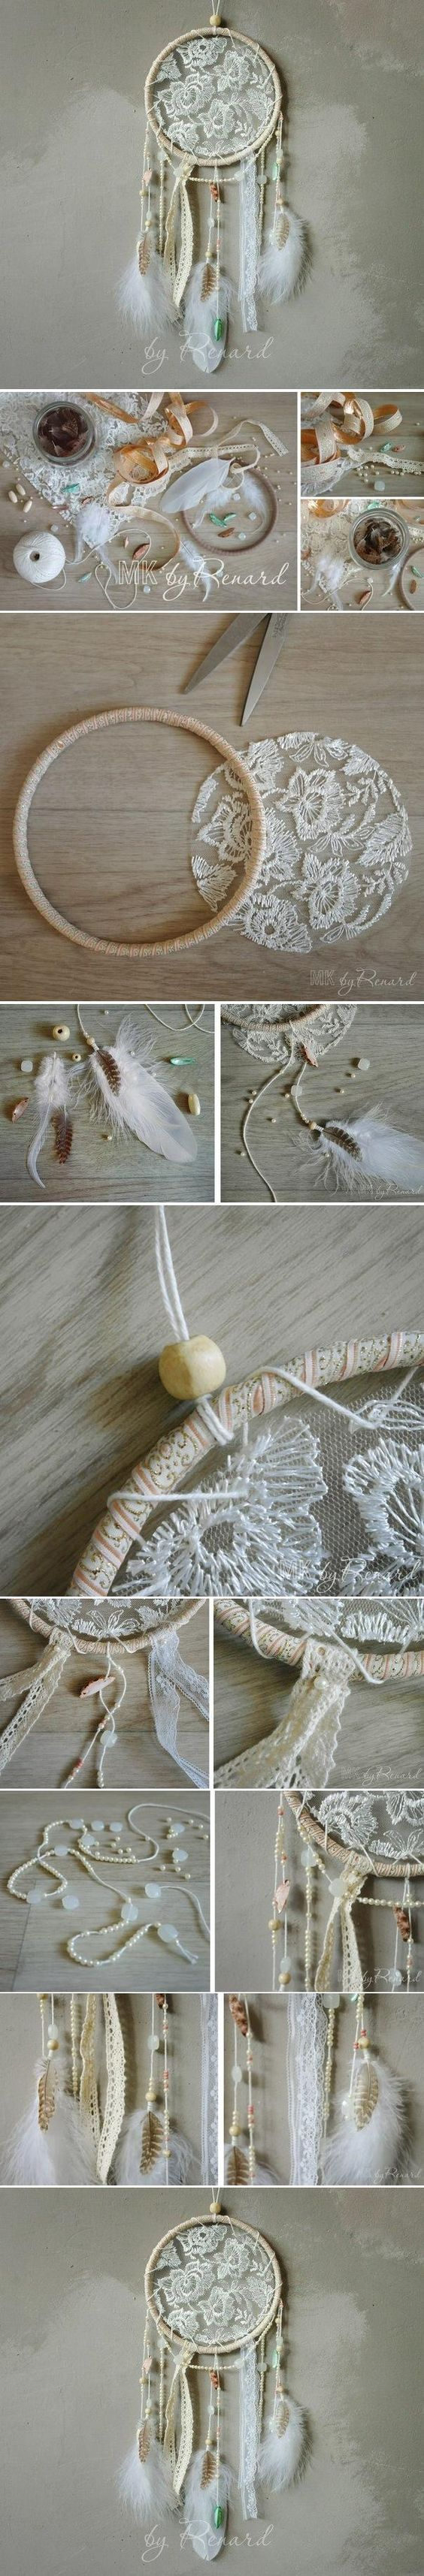 DIY Simple Dreamcatcher: